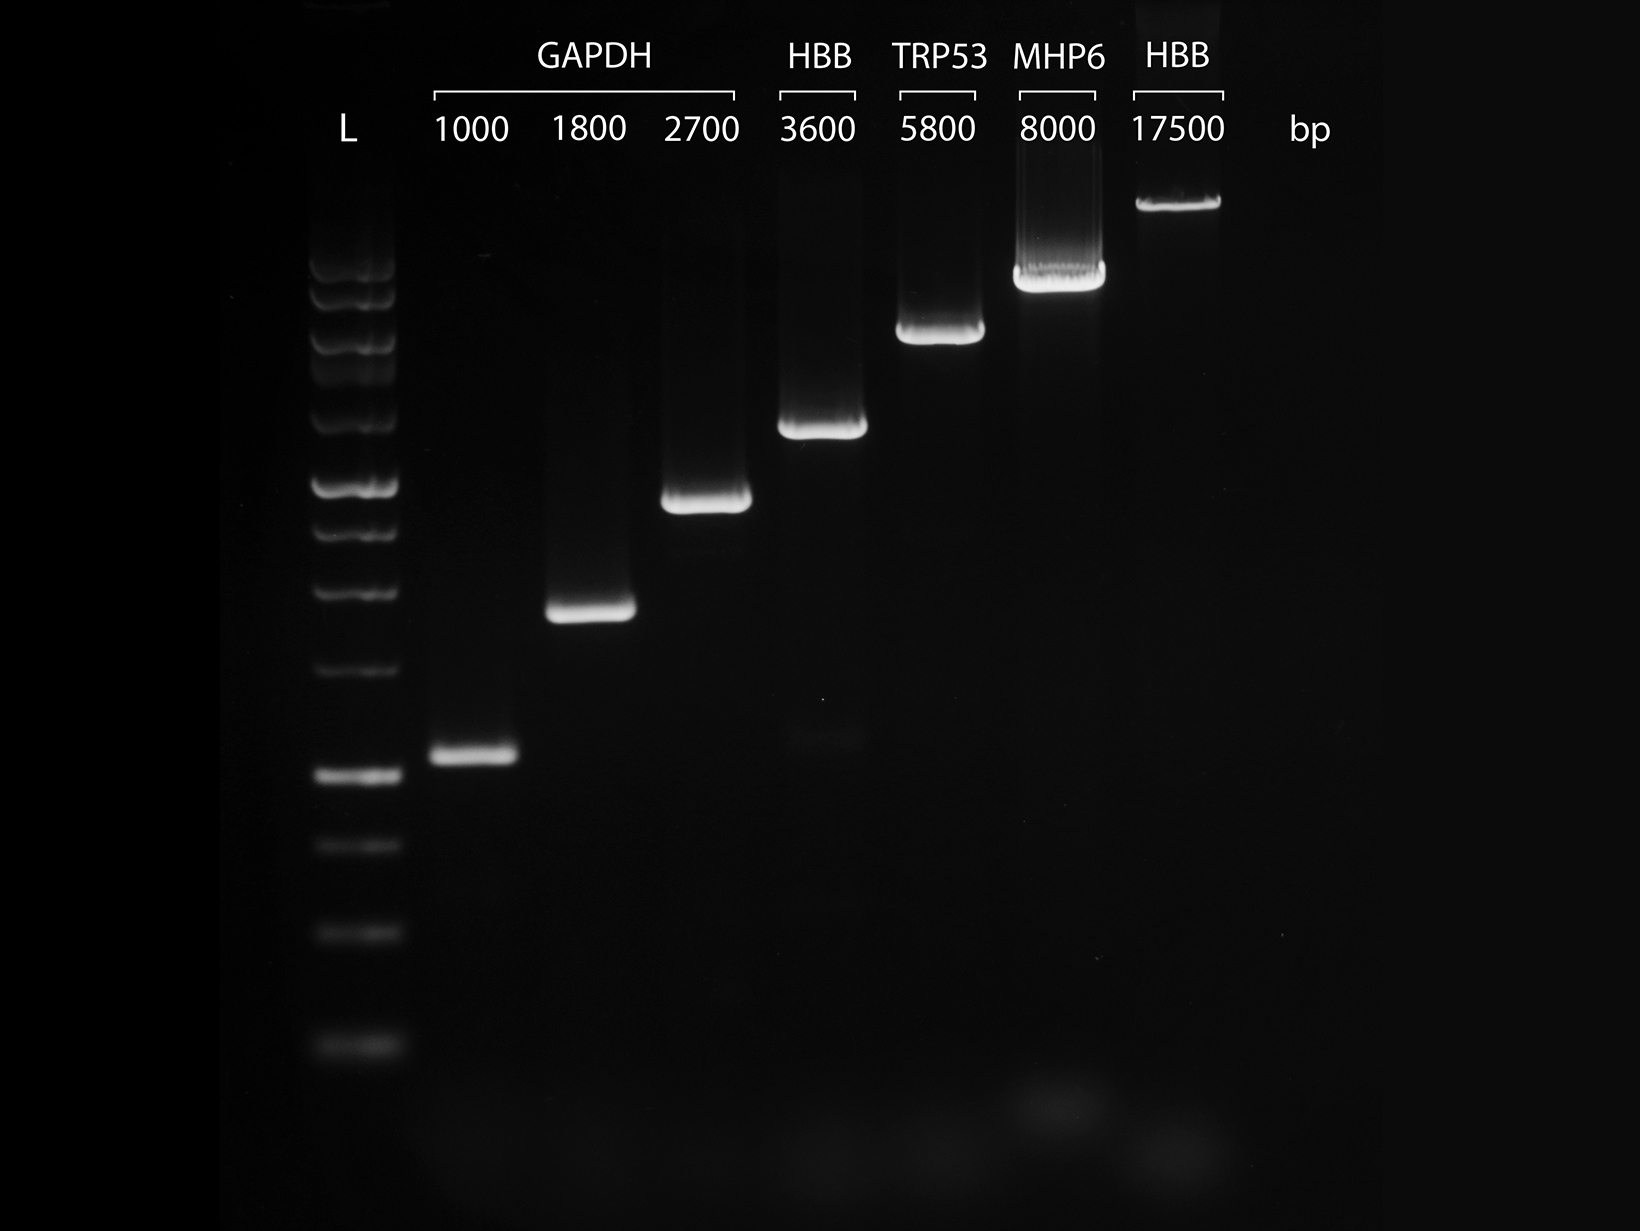 Gel image showing PCRBIO HS VeriFi Polymerase successfully amplifying a broad range of amplicon lengths from 1kb to 17.5kb